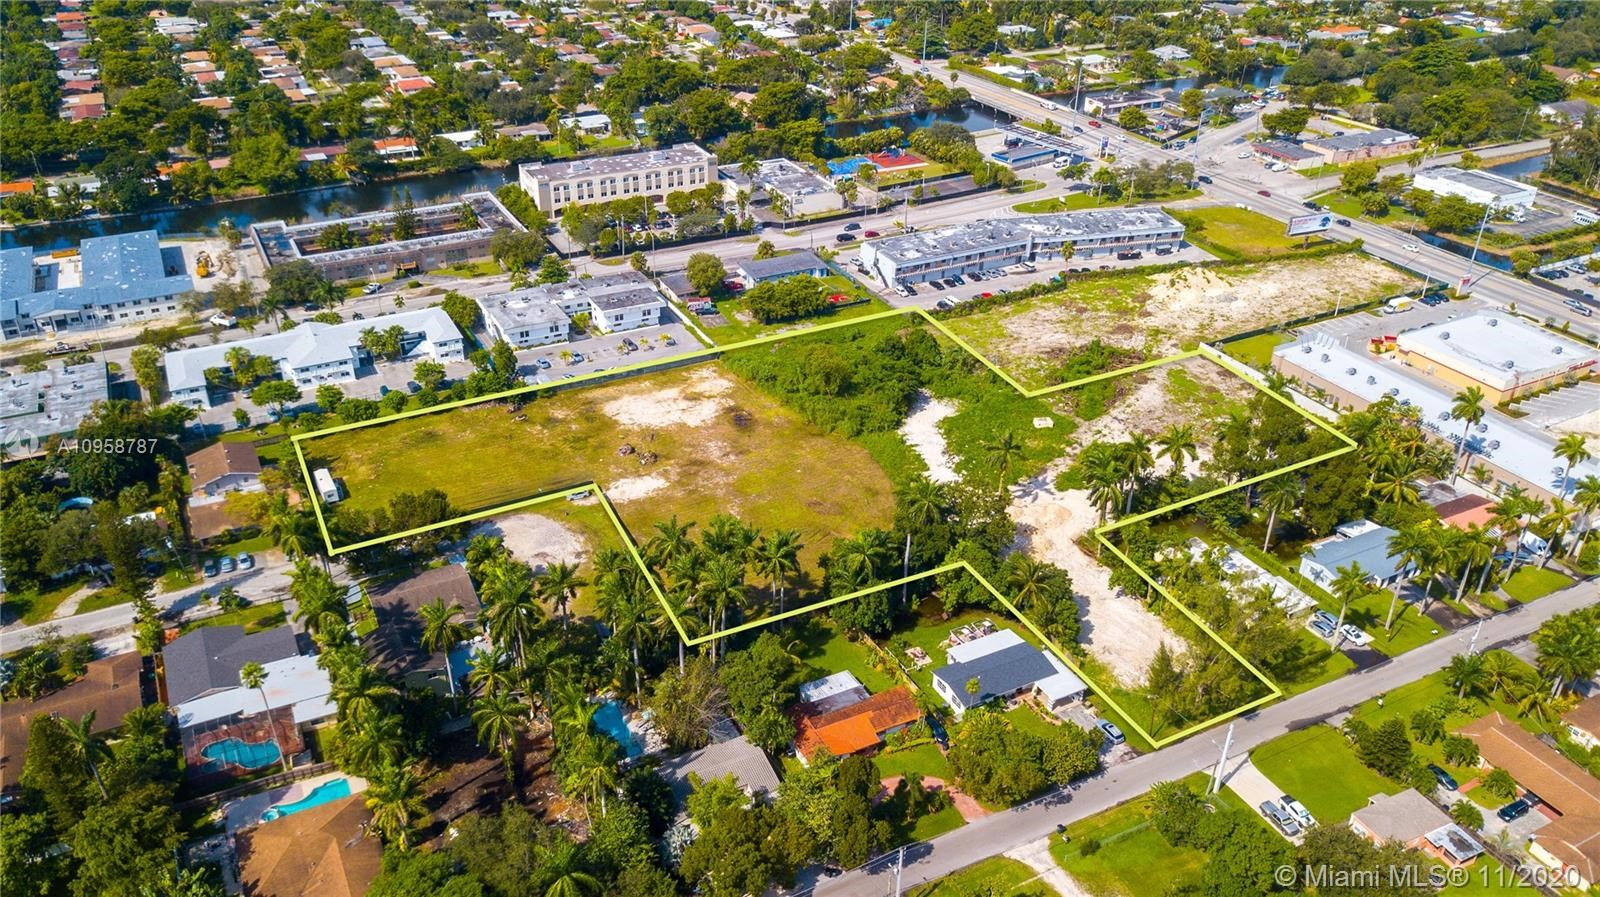 13212 NE 3rd Ave, North Miami, FL 33161